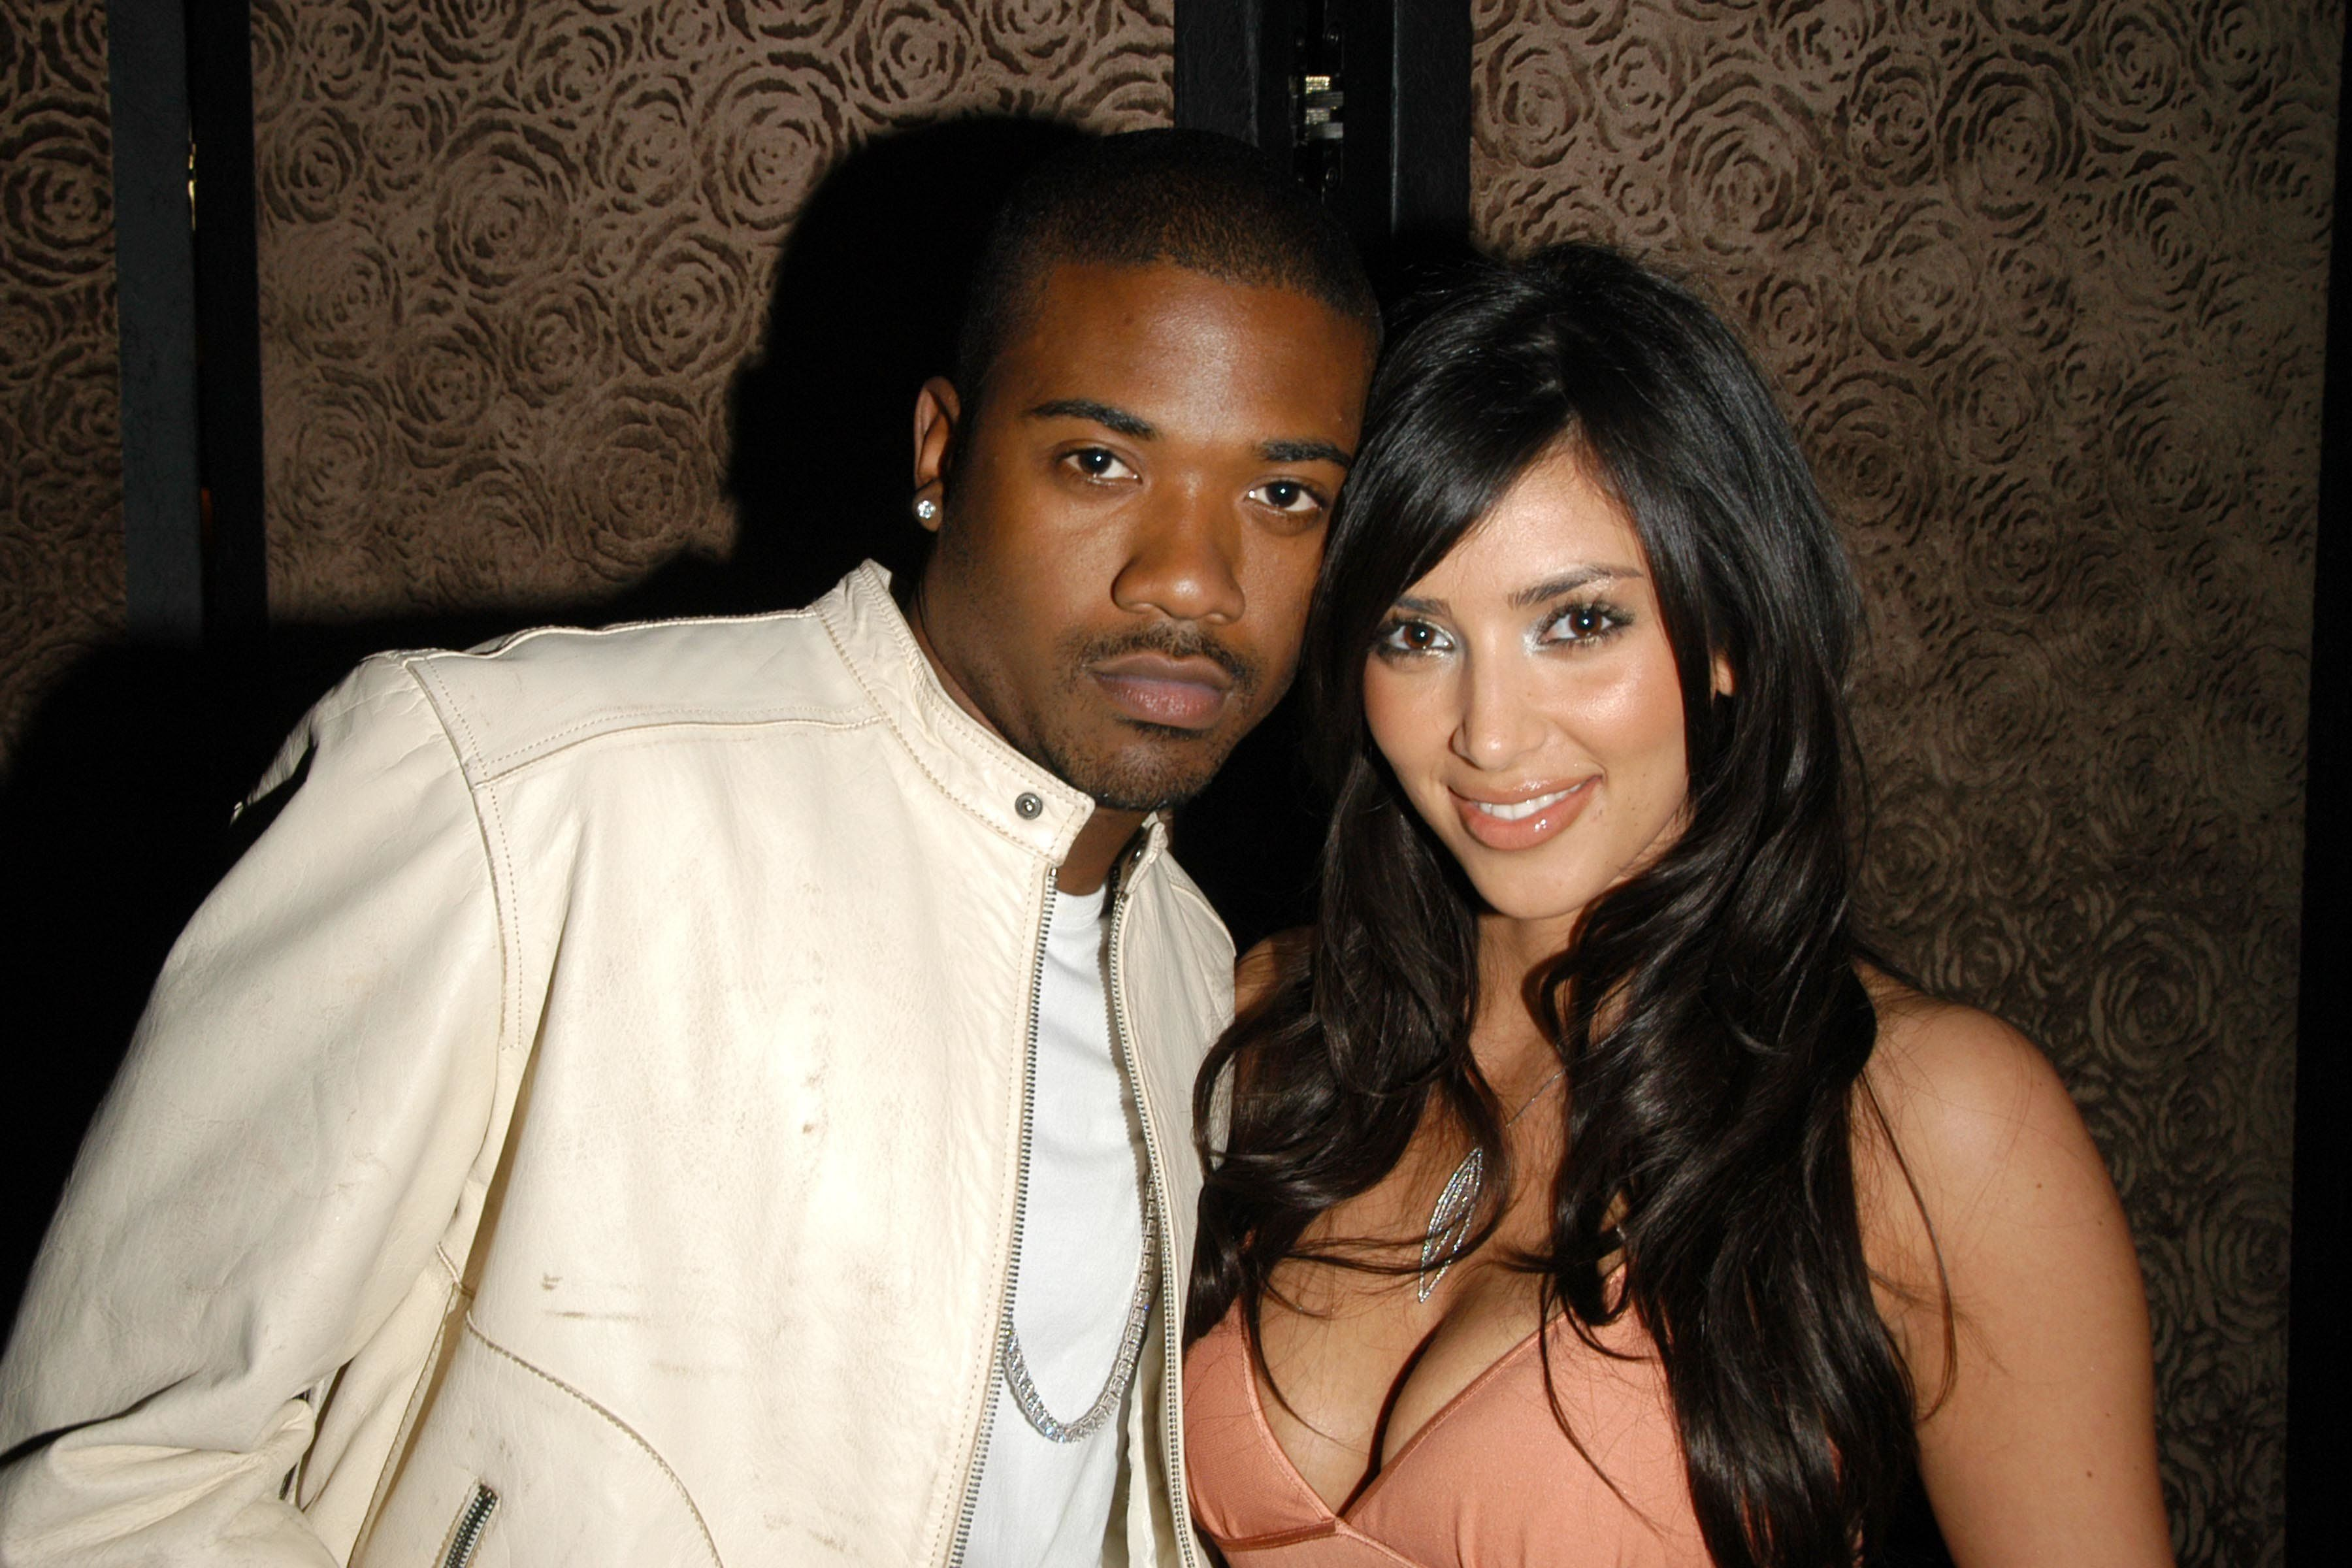 Ray J and Kim Kardashian dated from 2003 to